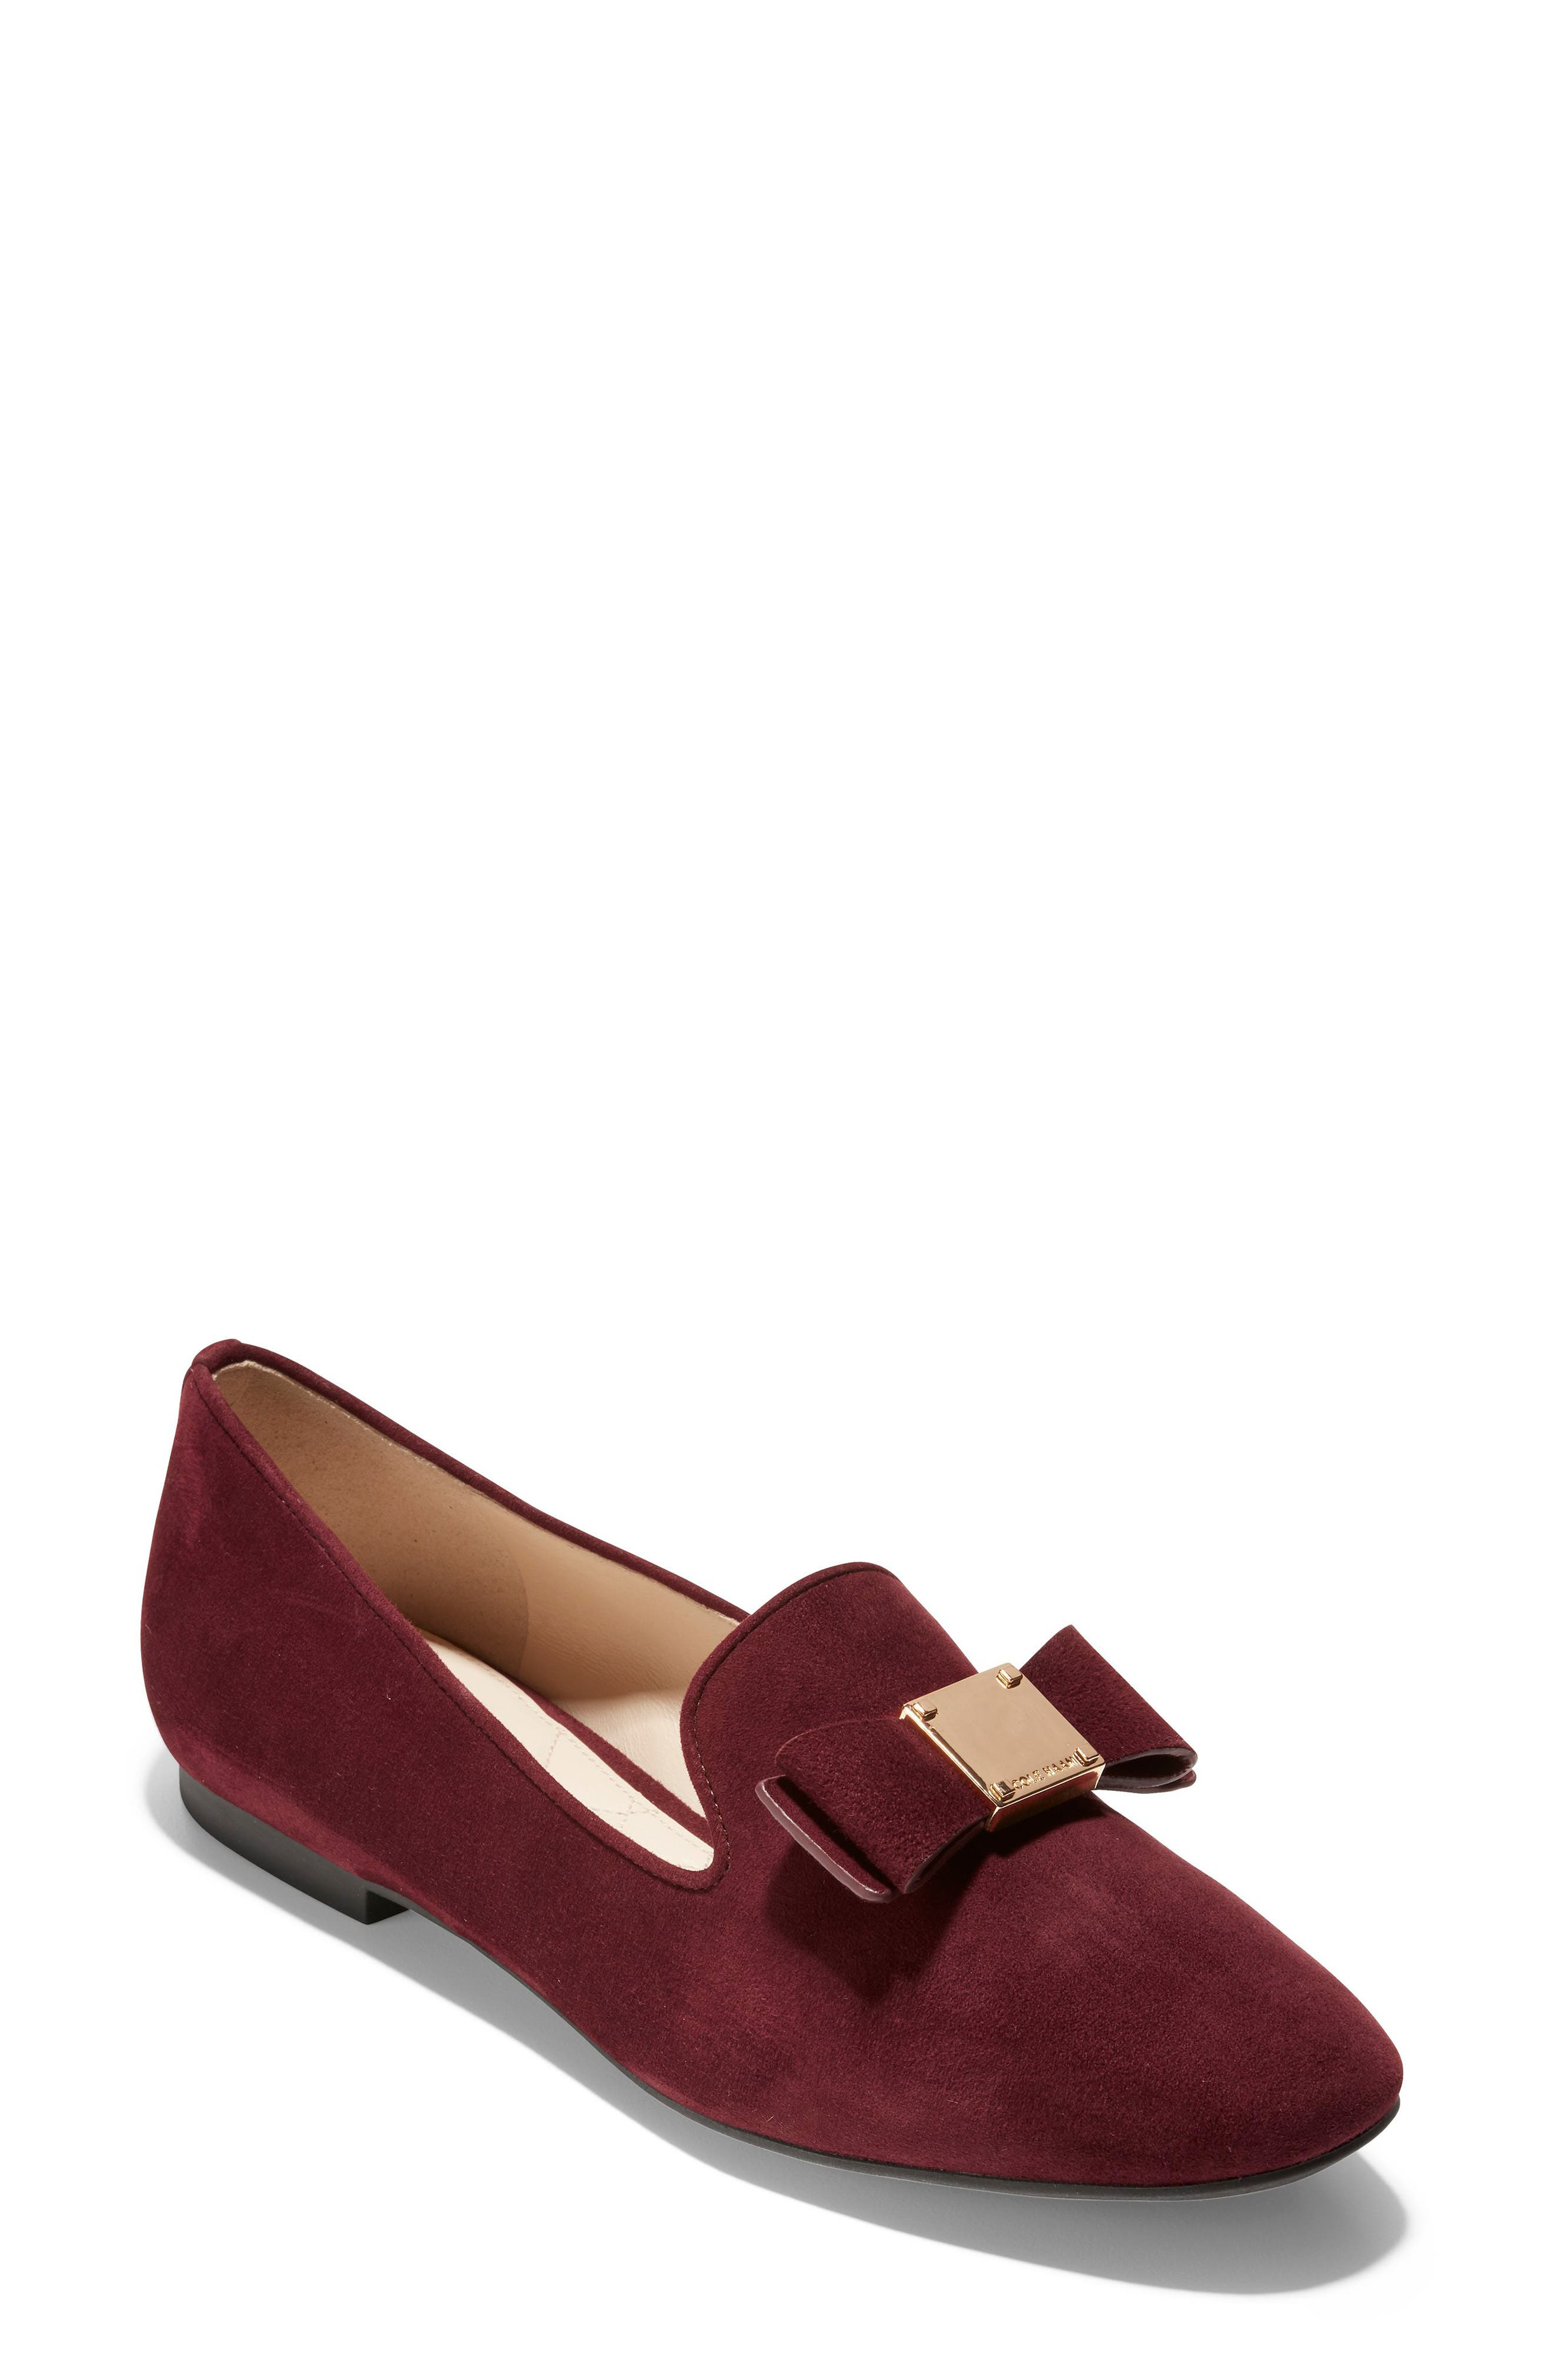 COLE HAAN Tali Grand Suede Bow Loafers in Cordovan Suede